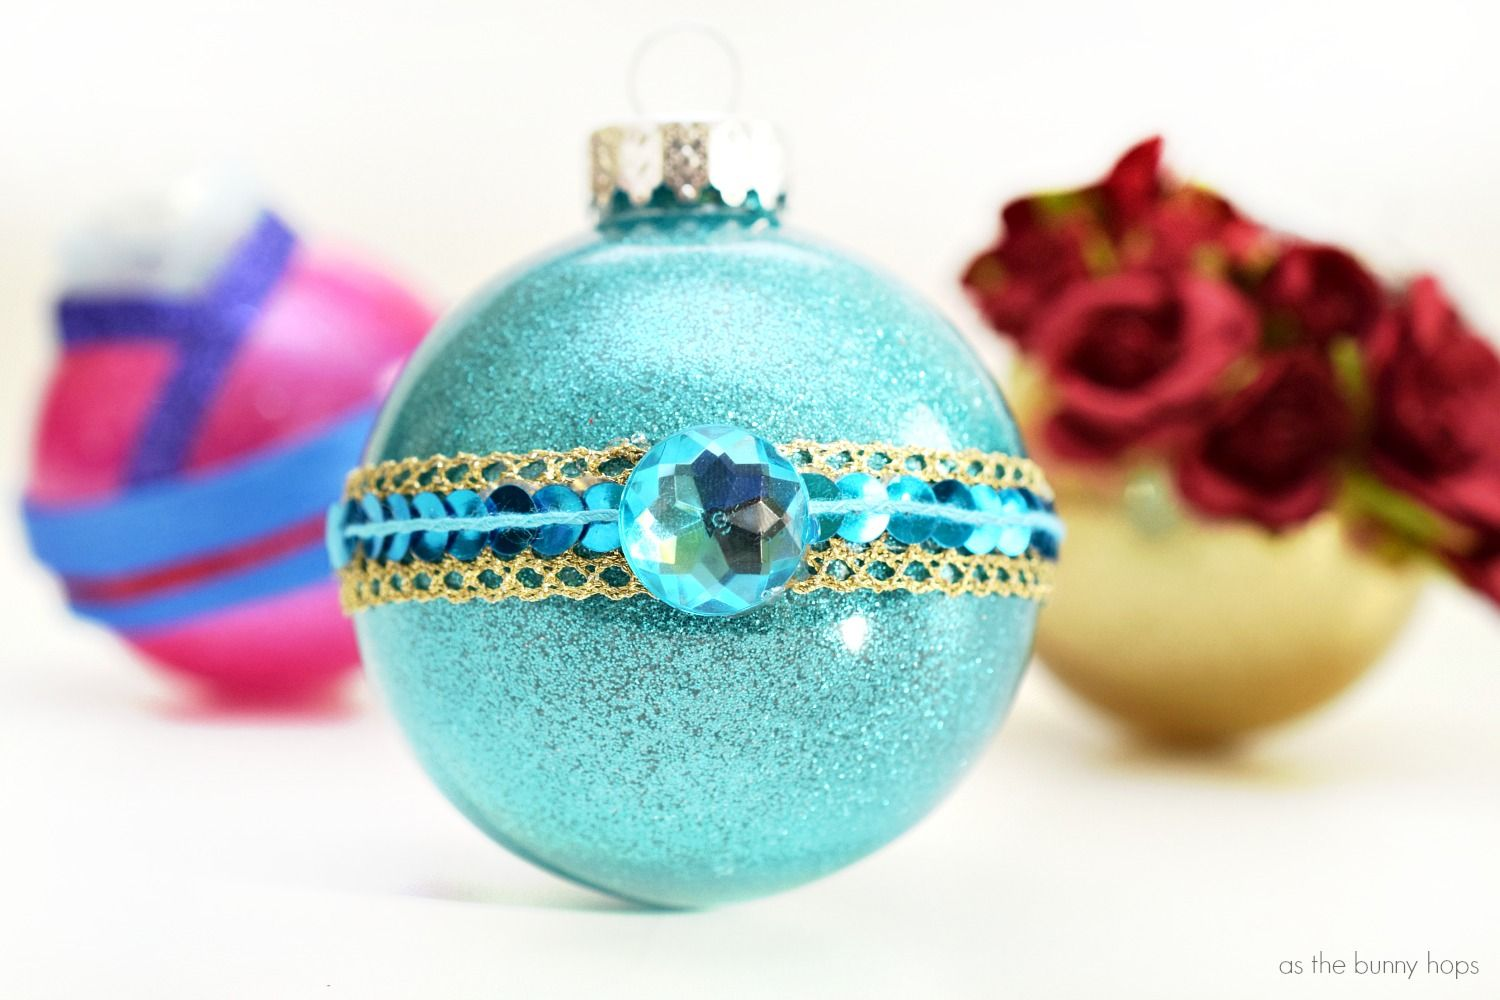 Make Your Own Diy Disney Princess Inspired Ornaments With These Ideas Featuring Mul Disney Princess Ornaments Disney Christmas Decorations Disney Ornaments Diy